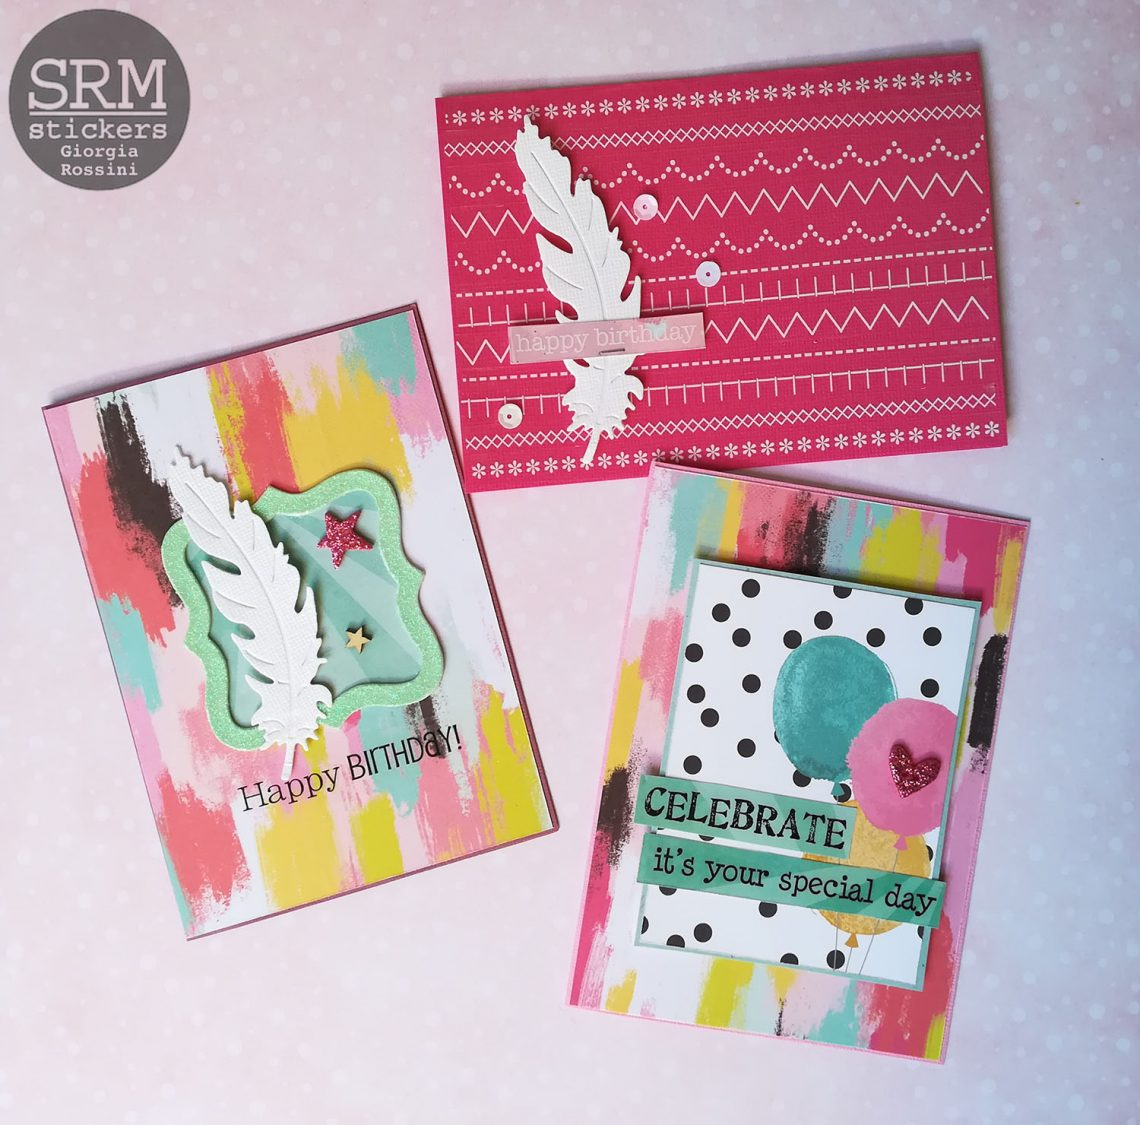 SRM stickers – Birthday cards set